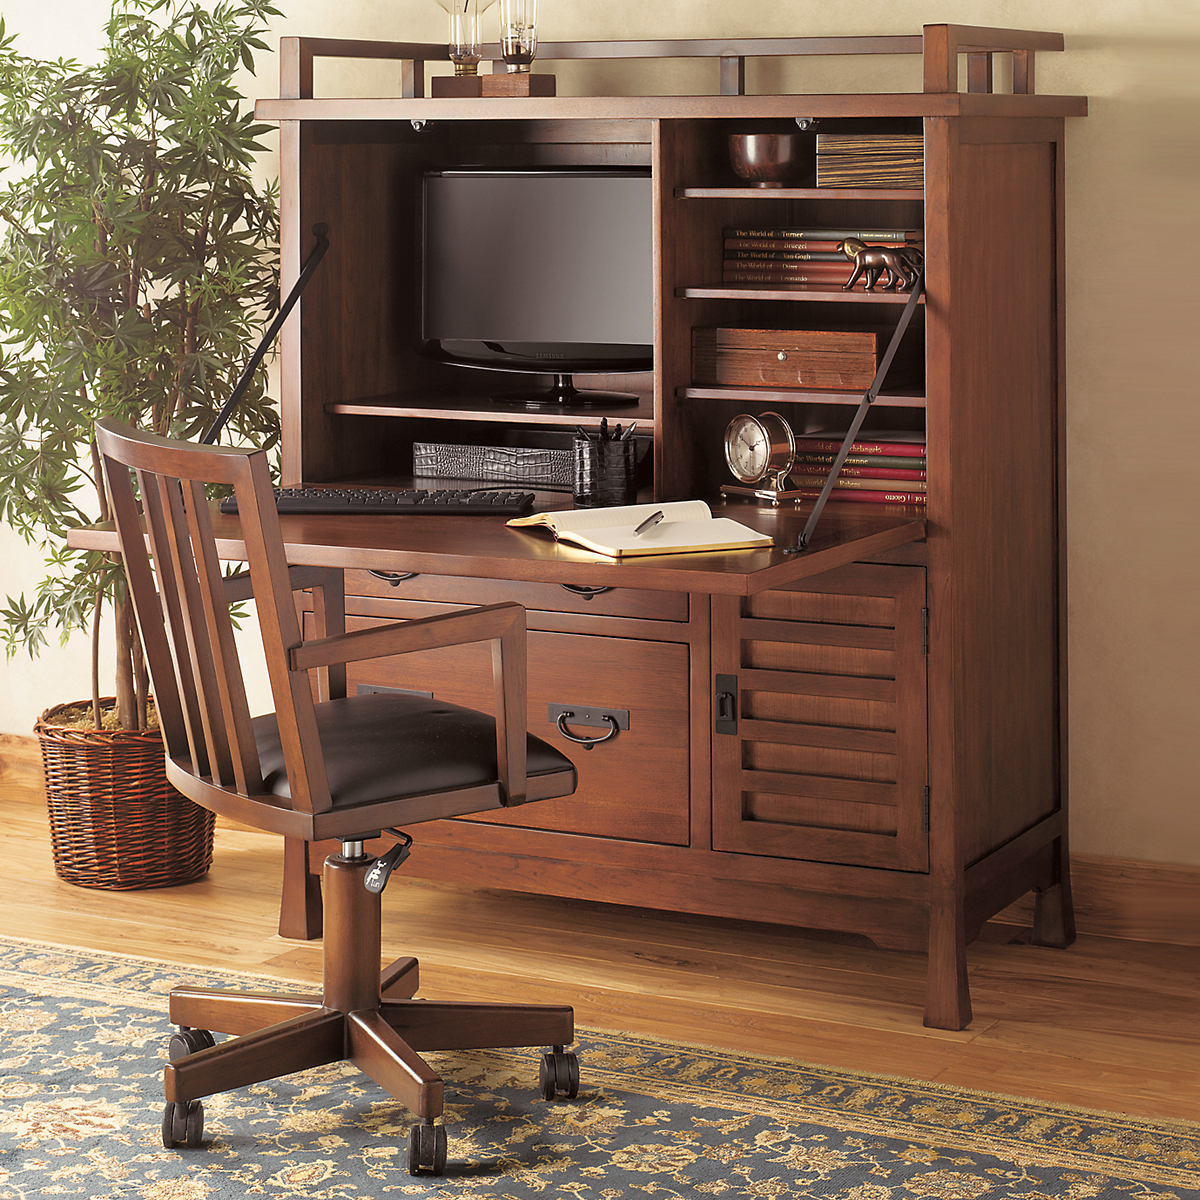 maria yee shinto office armoire compact